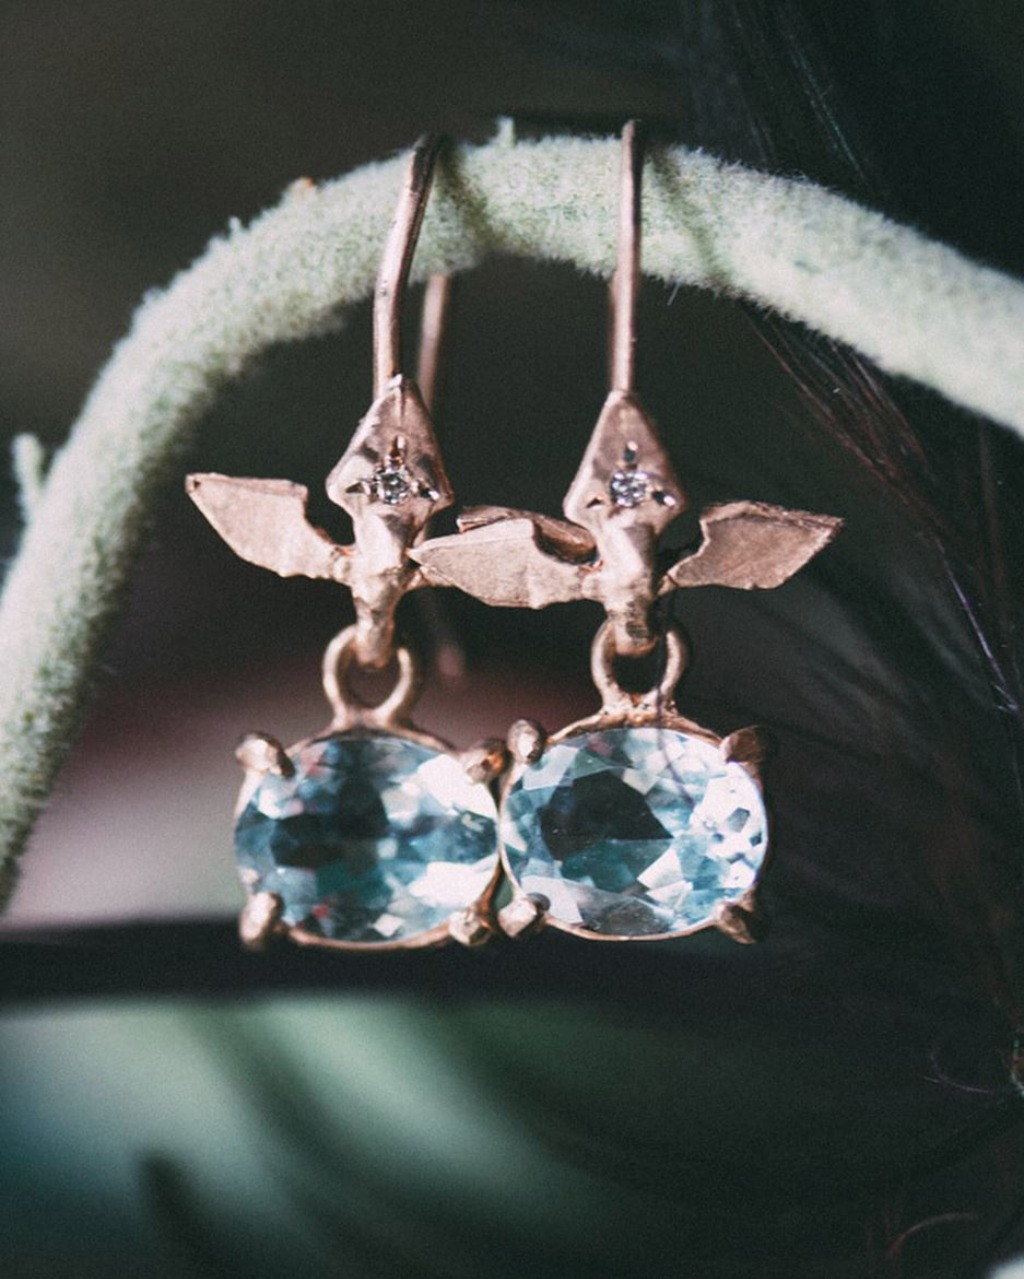 Ignis Aquamarine. This pair of earrings in 14K yellow gold with handcrafted earring wires with diamond accent. Simplistic and edgy